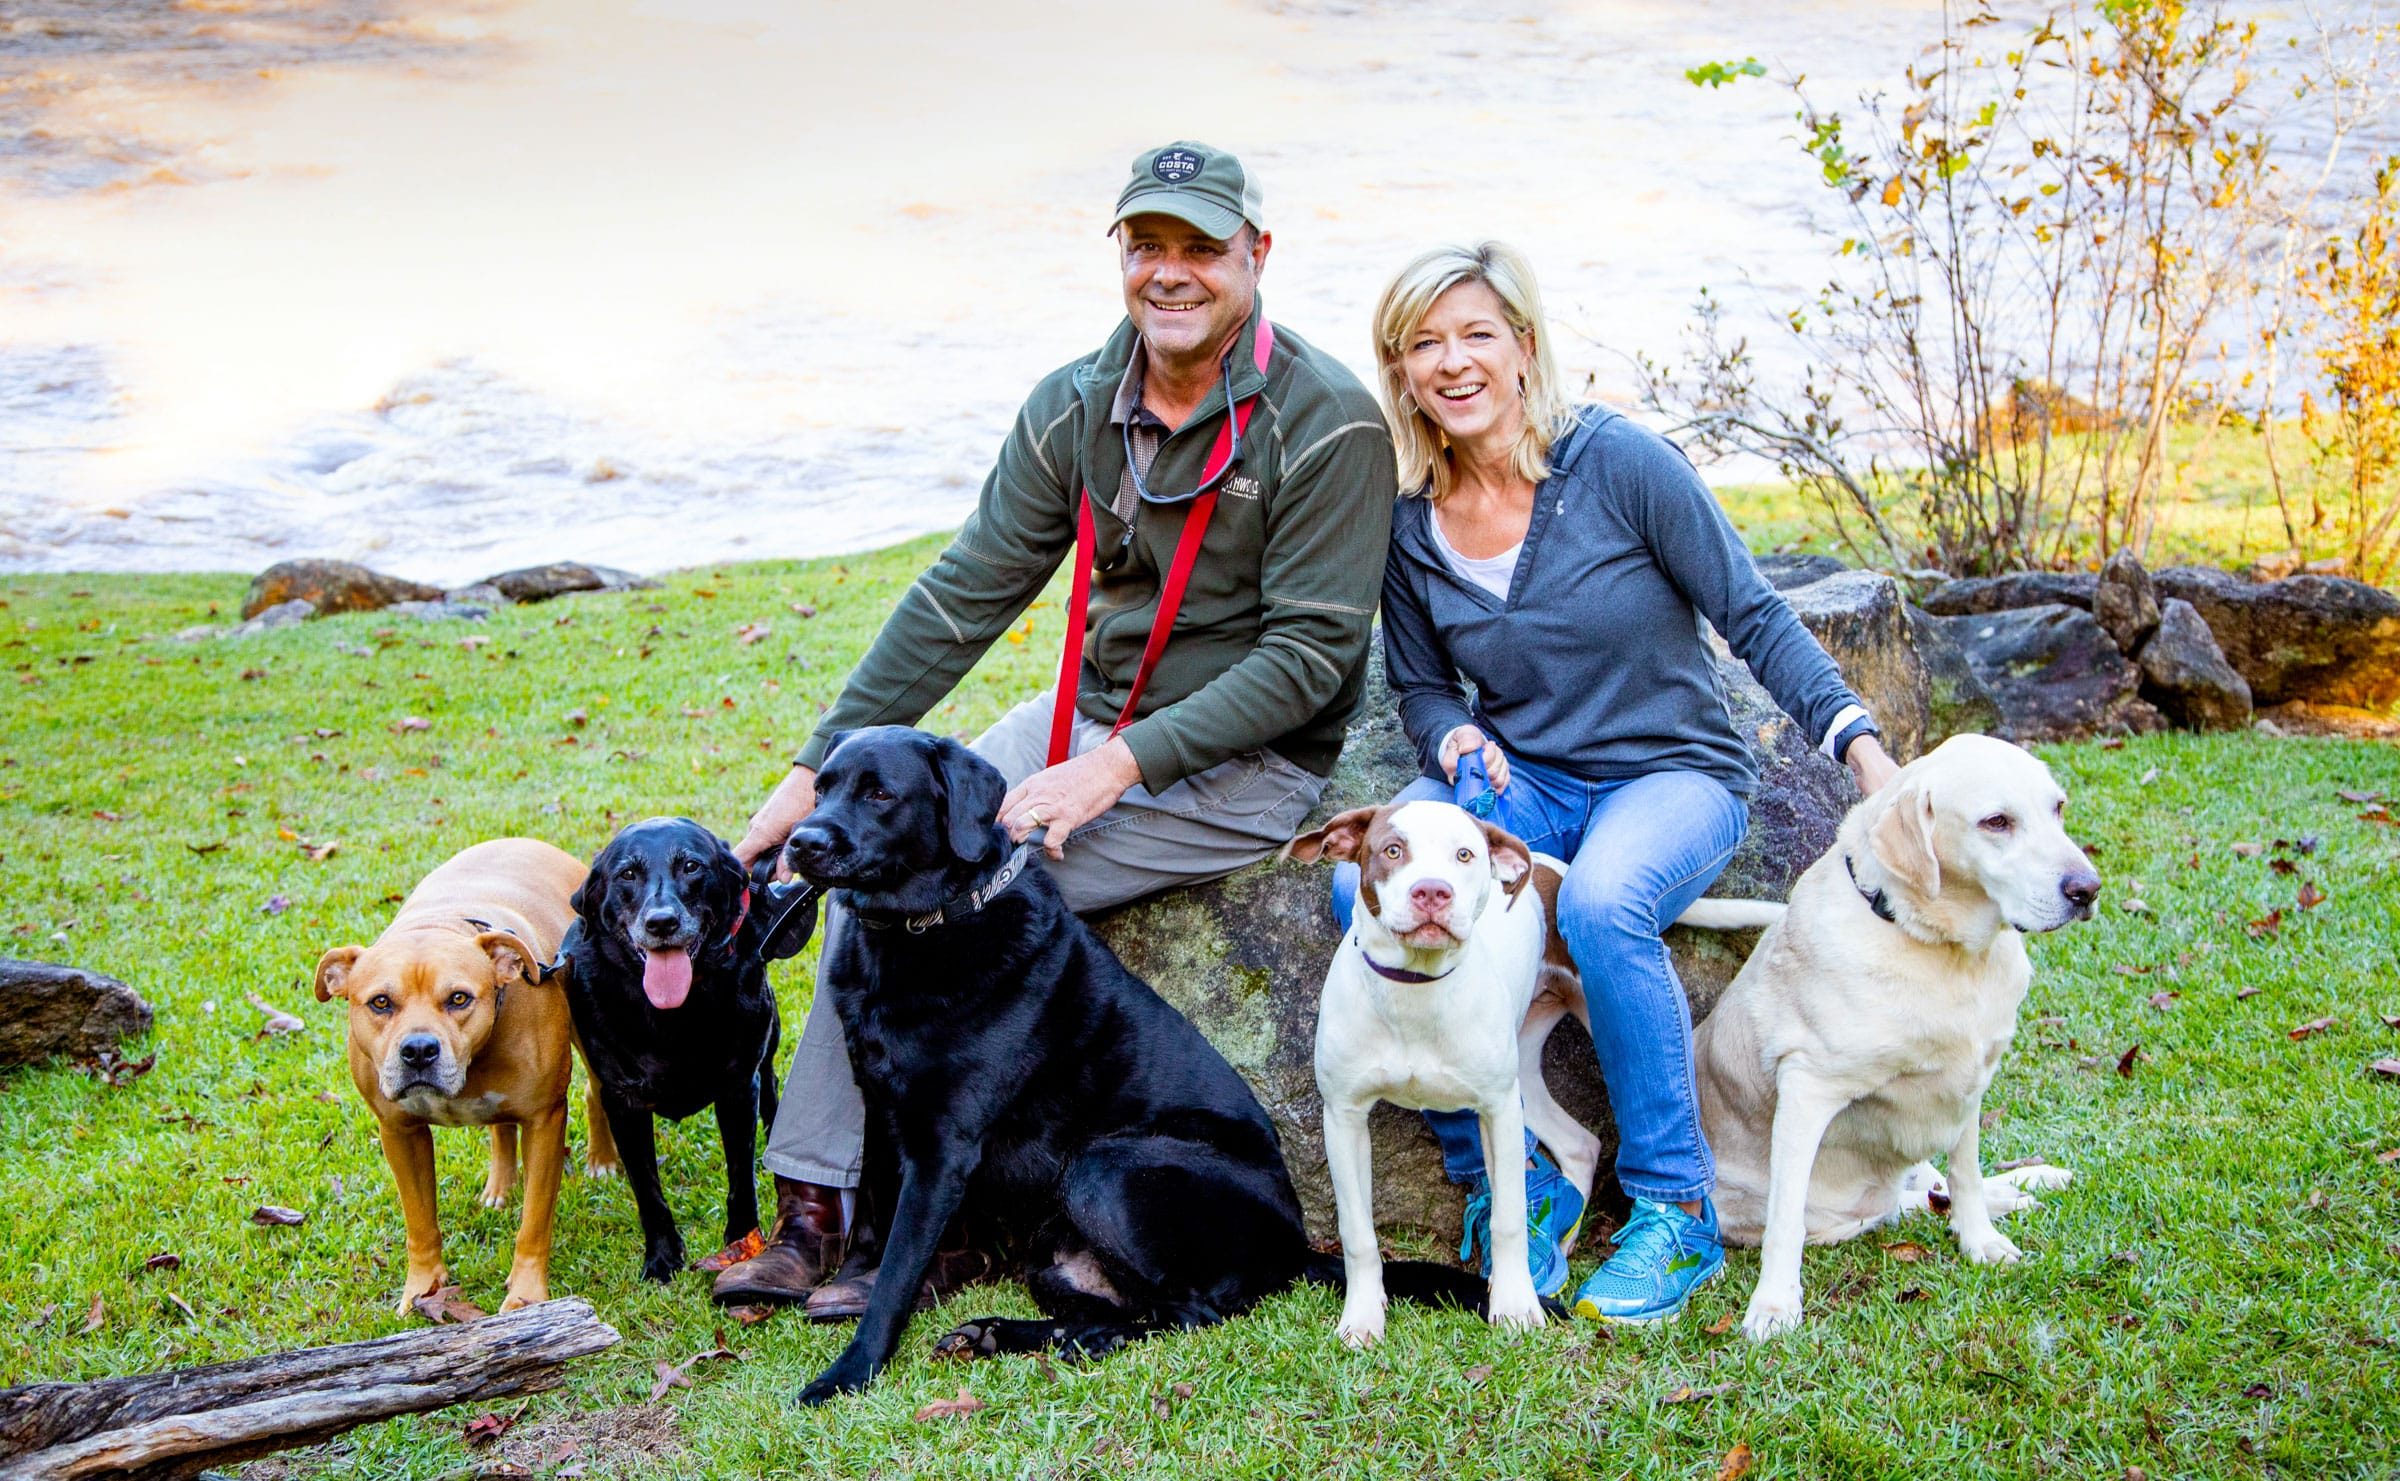 Holly and her husband Scott with their four rescues and one foster